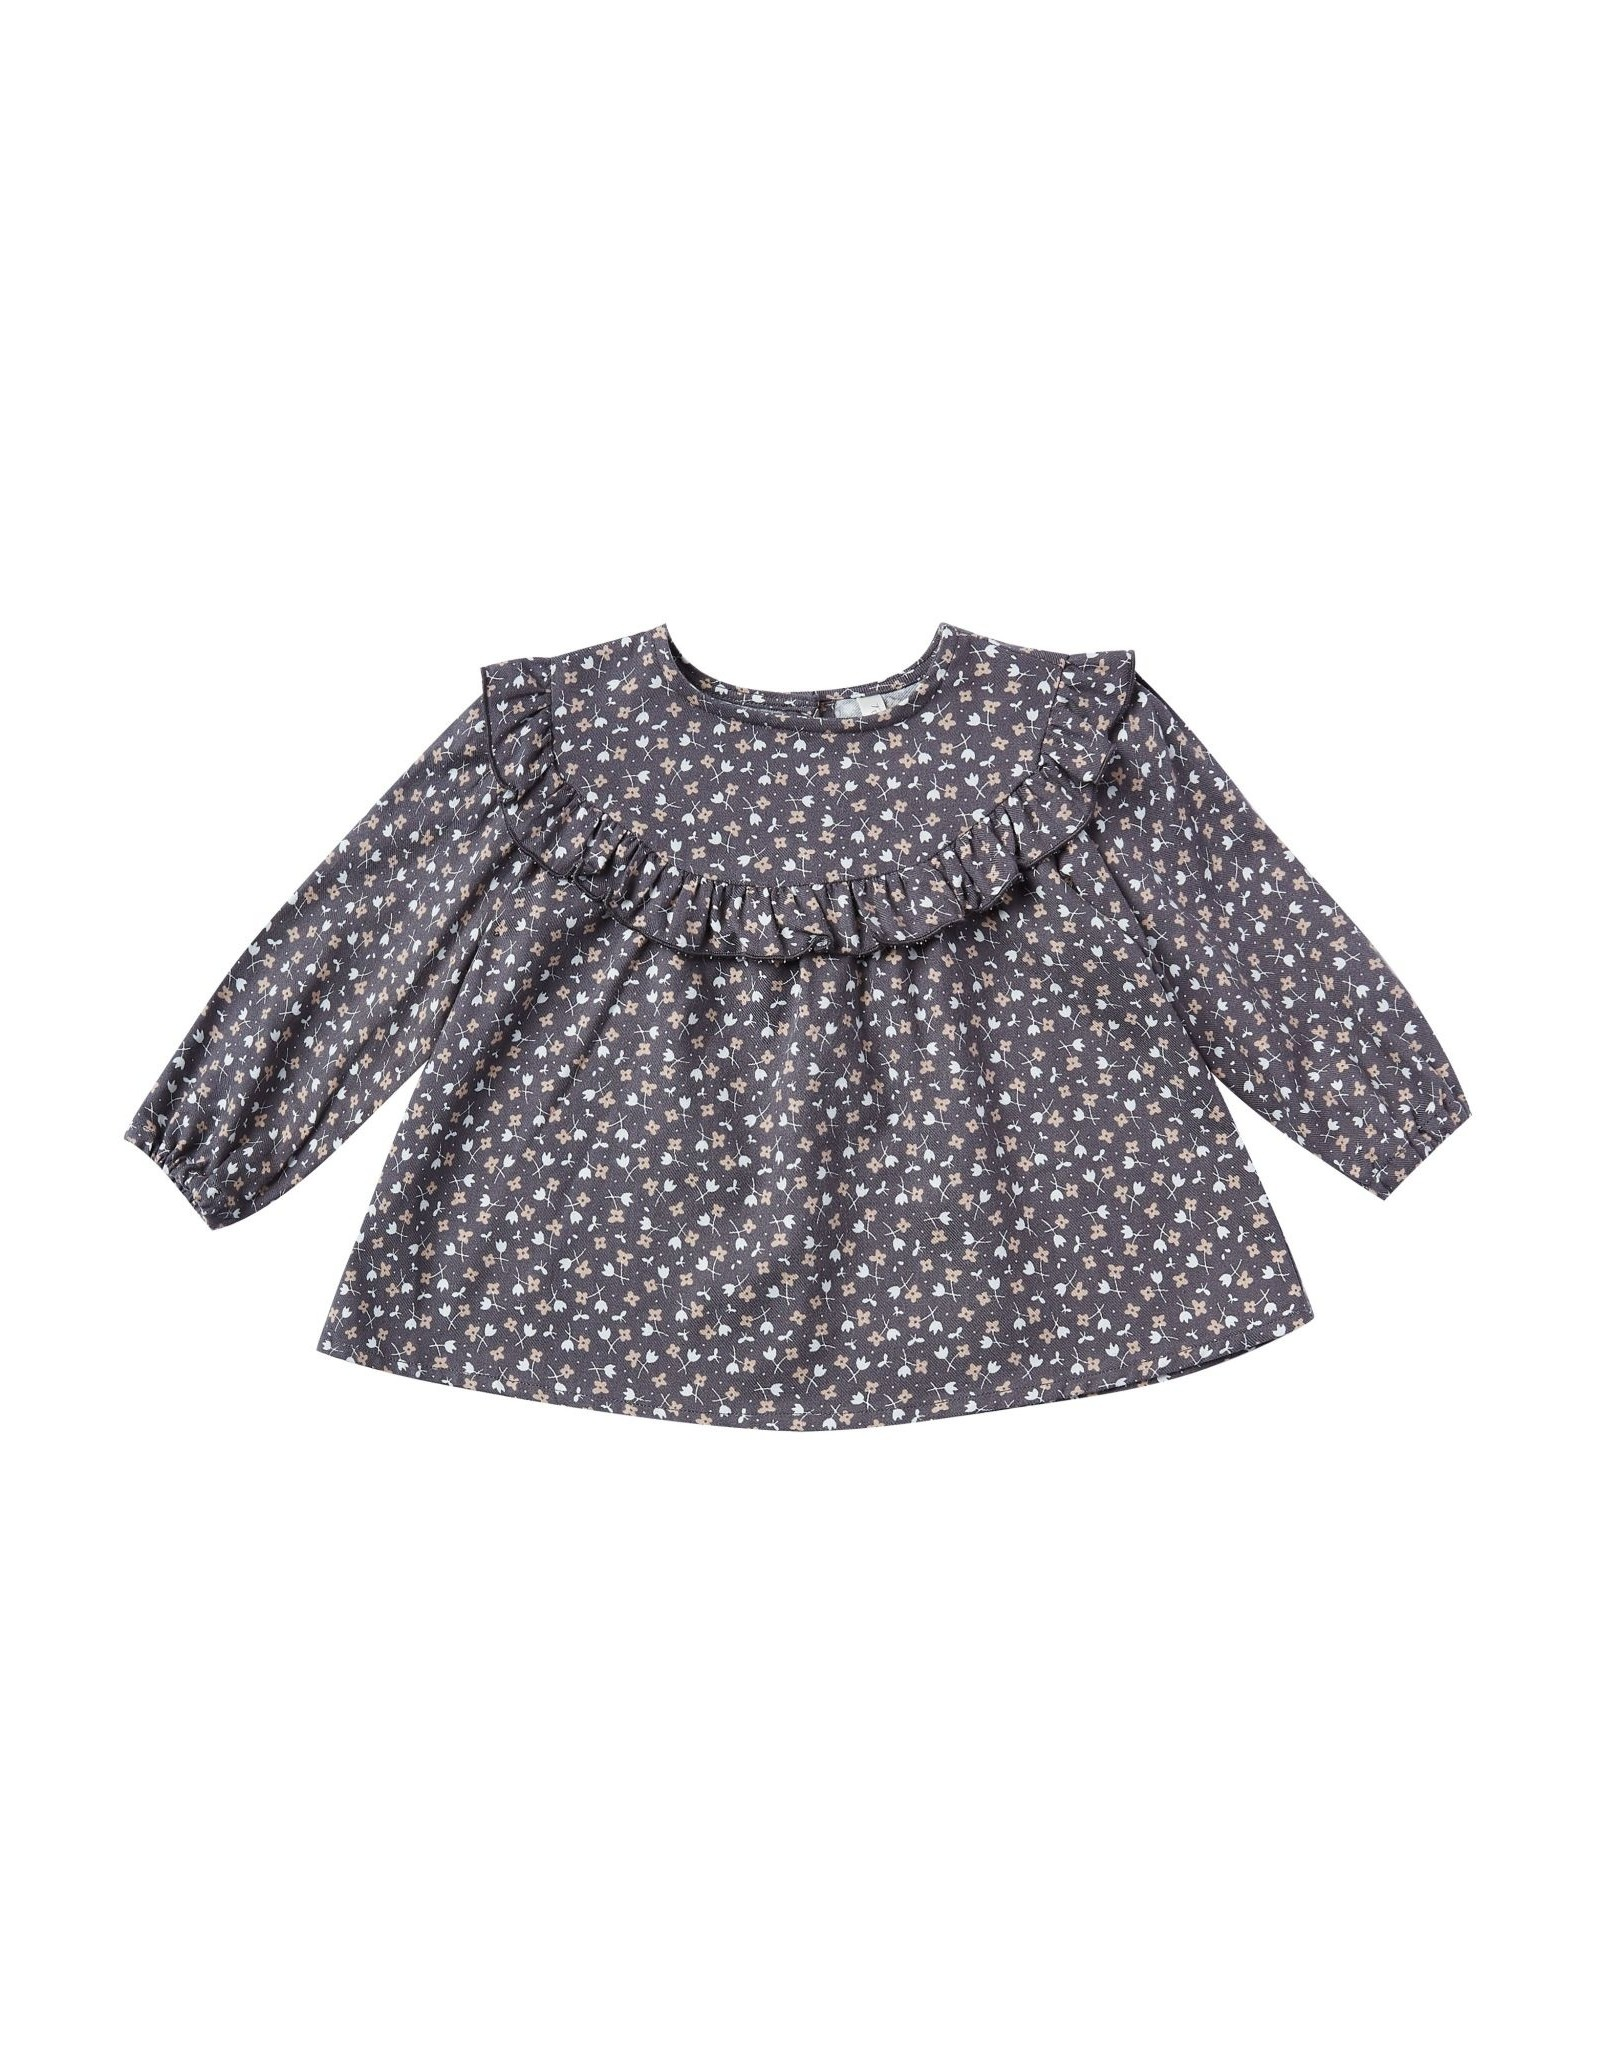 Rylee and Cru ditsy victoria blouse- indigo